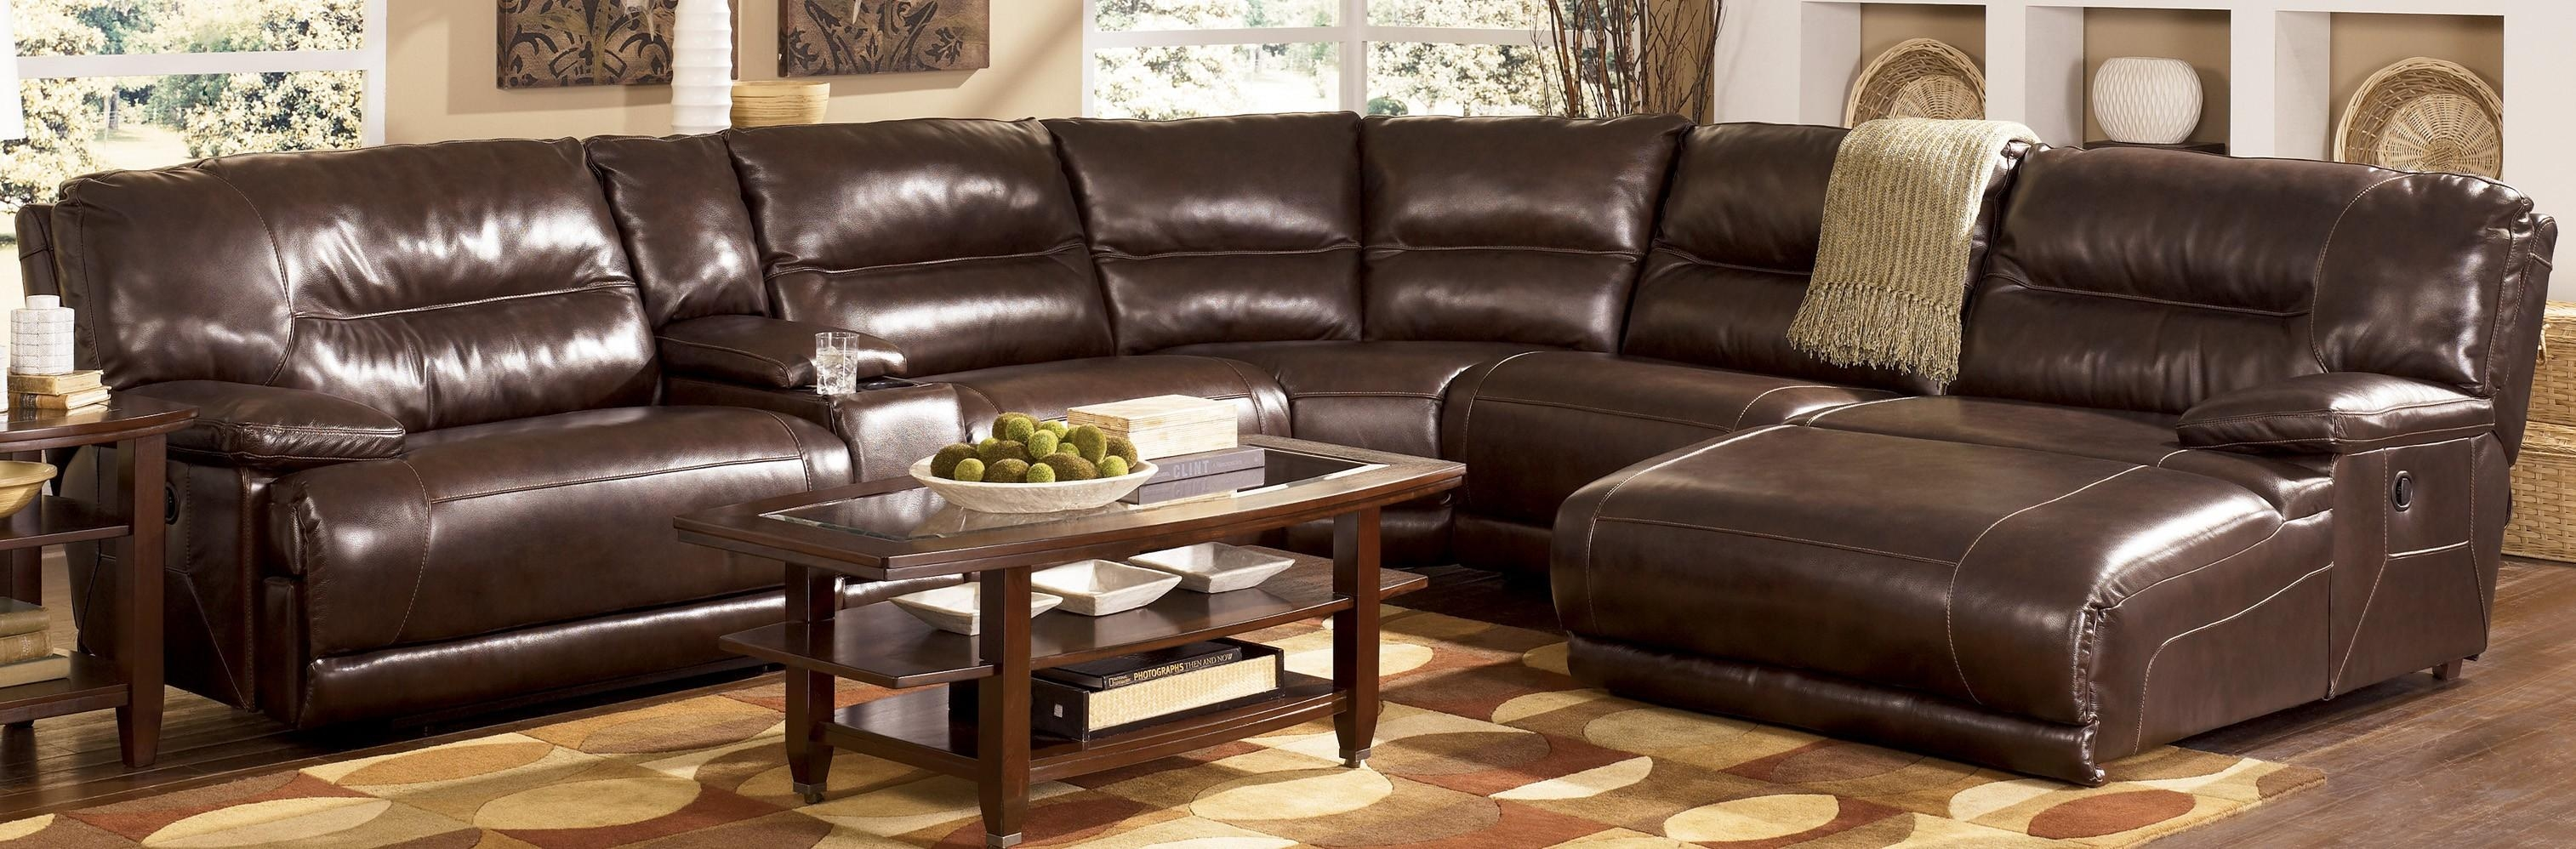 Furniture: Chaise Sectional | Sectional Couches With Recliners In Lazy Boy Leather Sectional (Image 5 of 20)